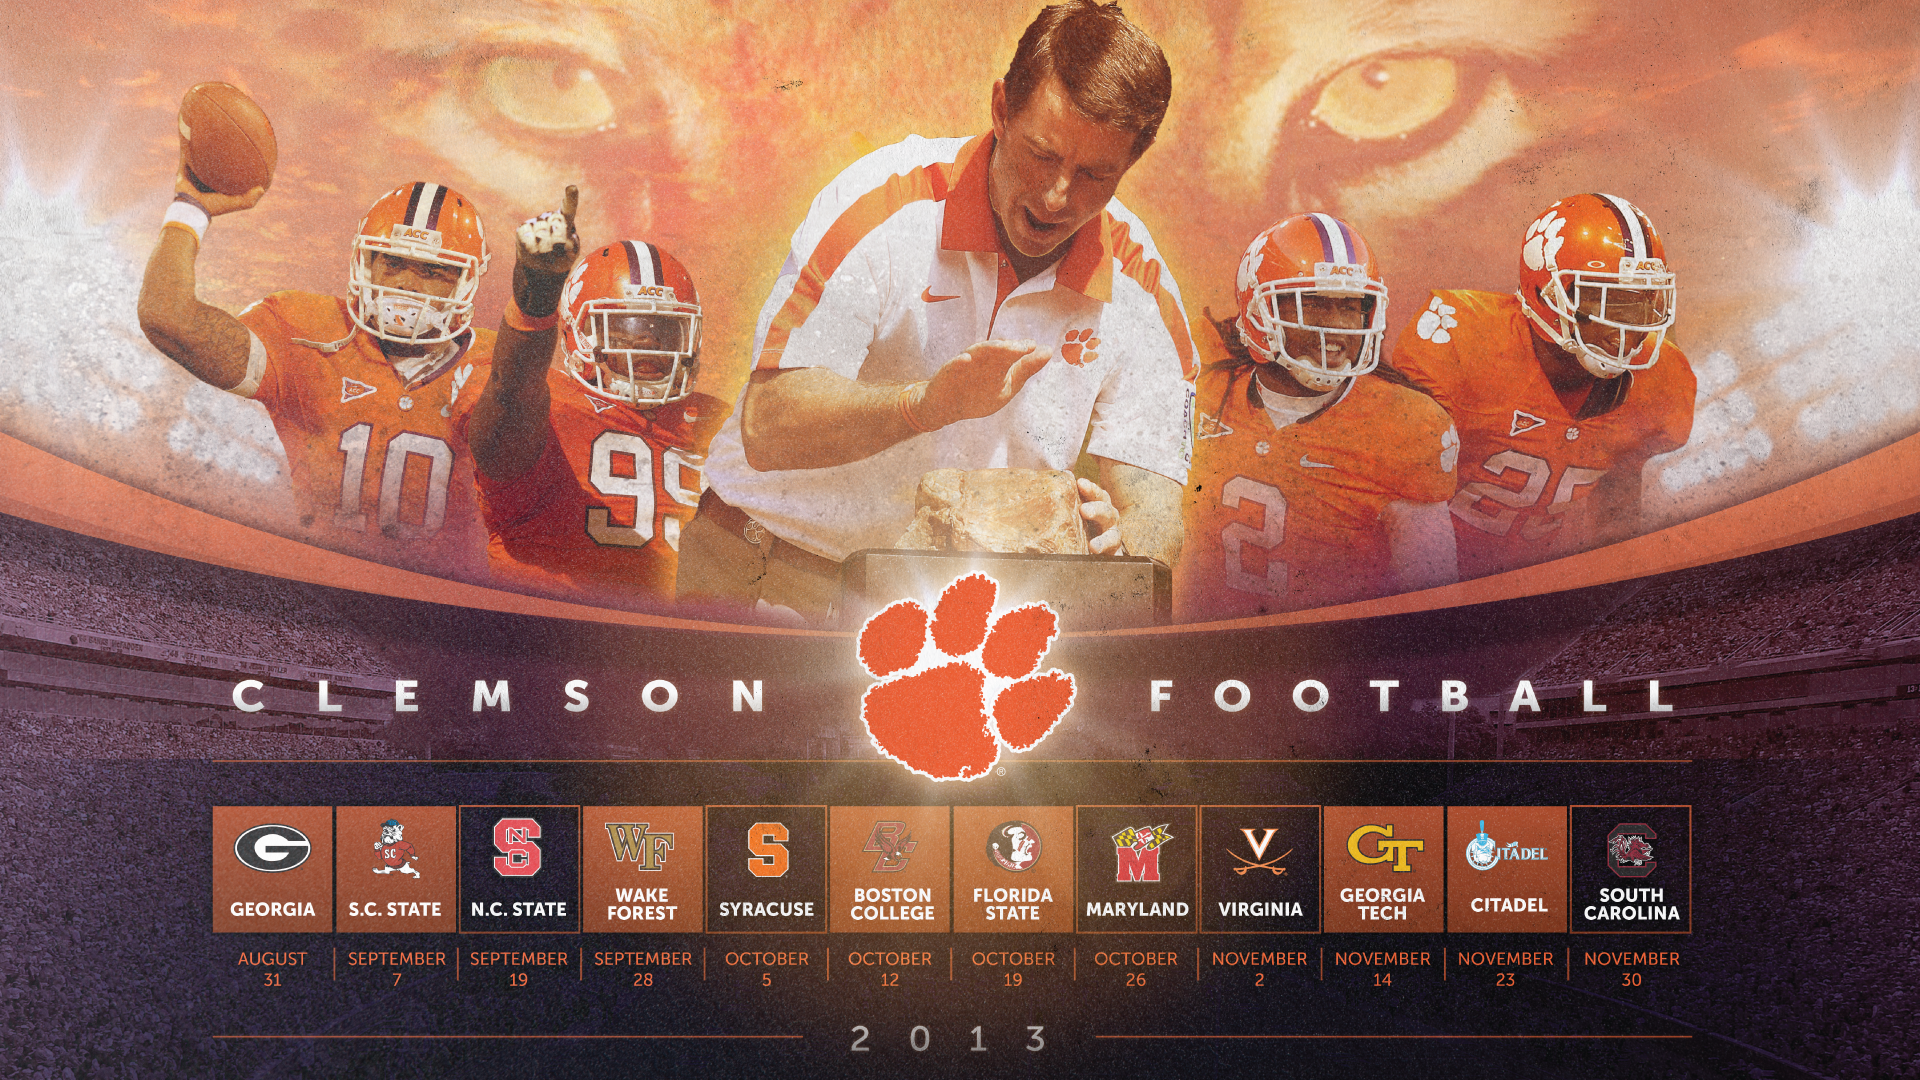 2013 clemson football wallpaper harley creative